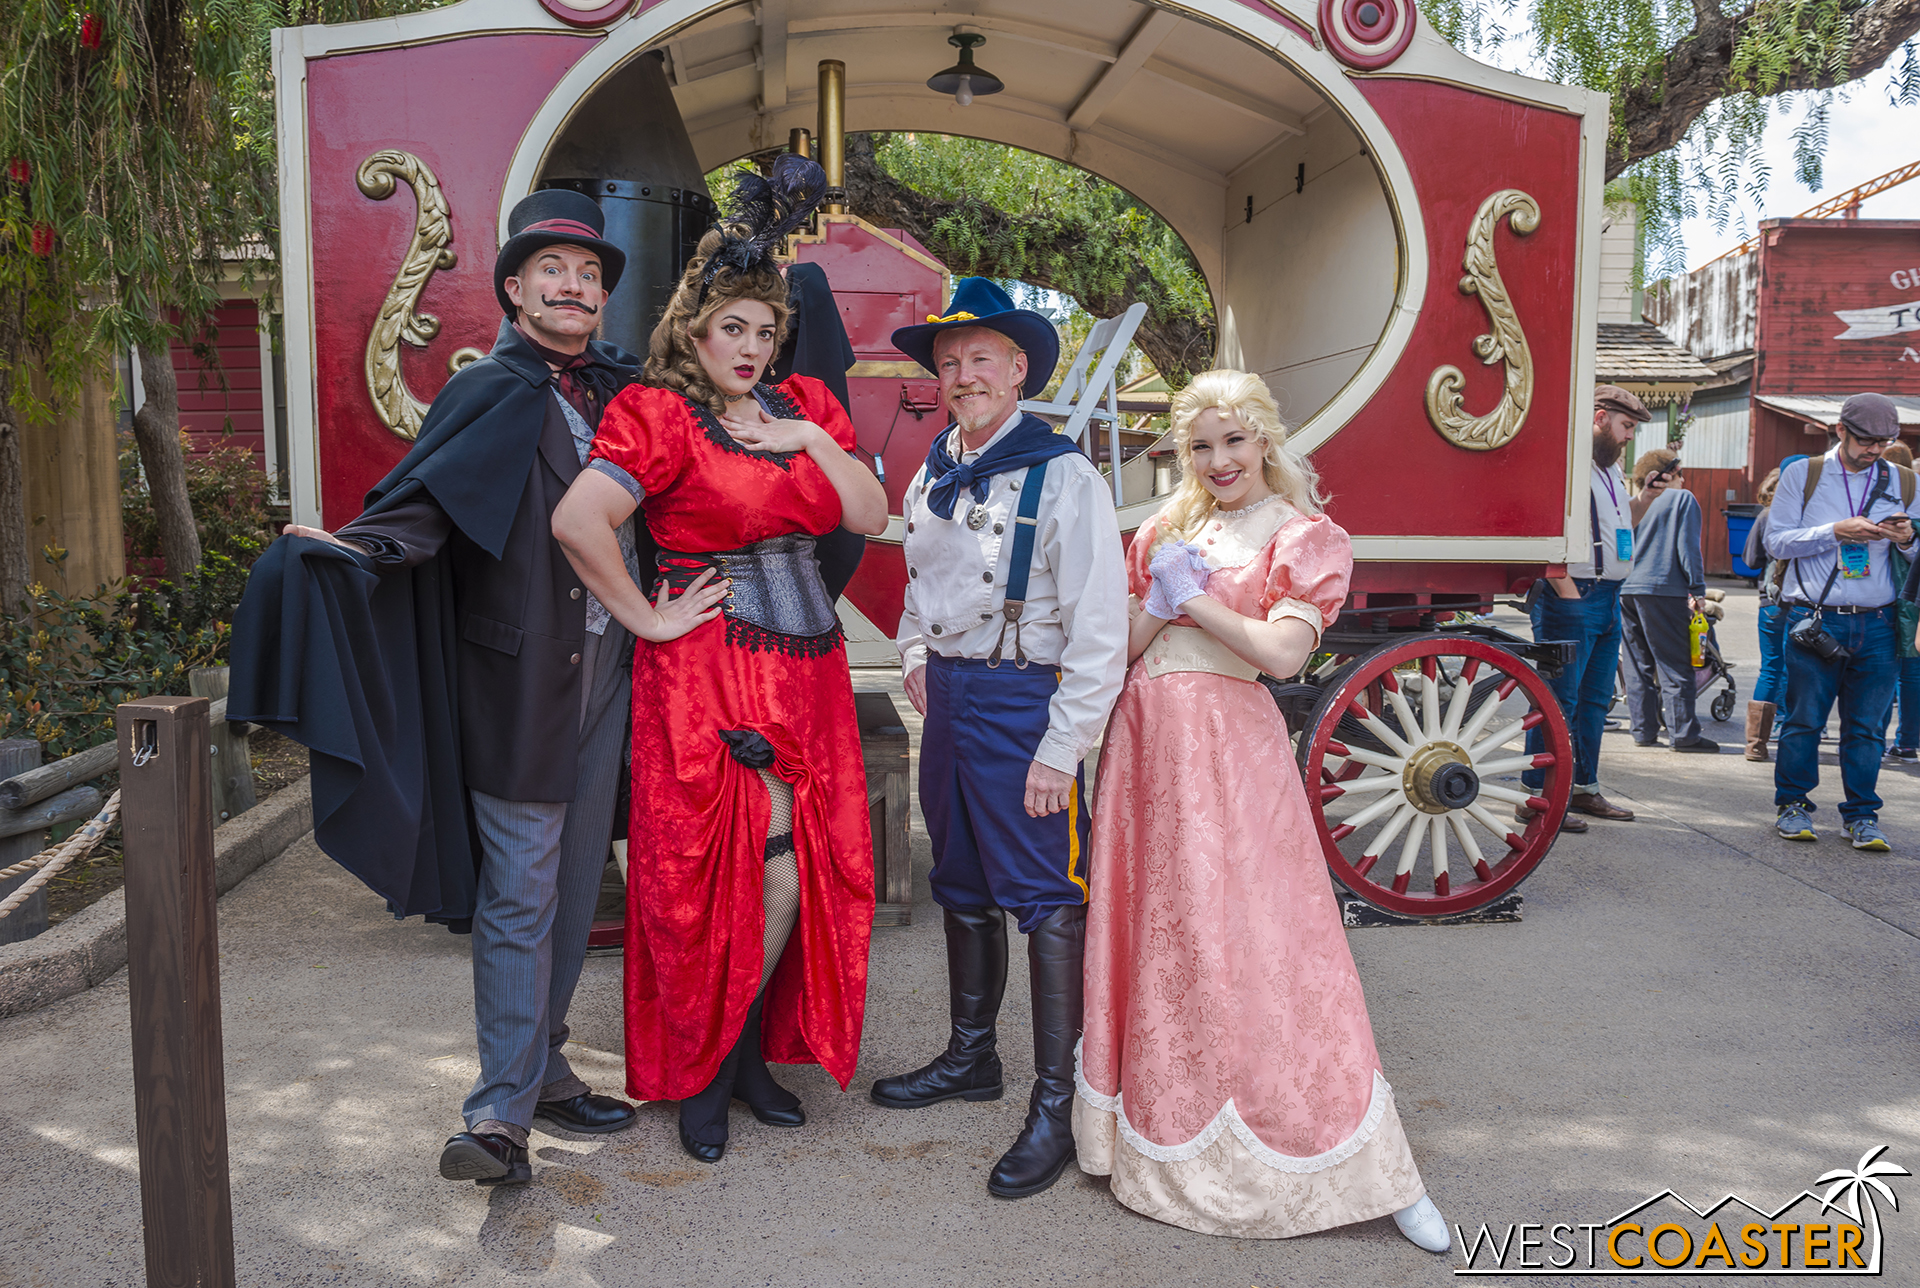 The cast of the Old Time Melodrama outside the theater.